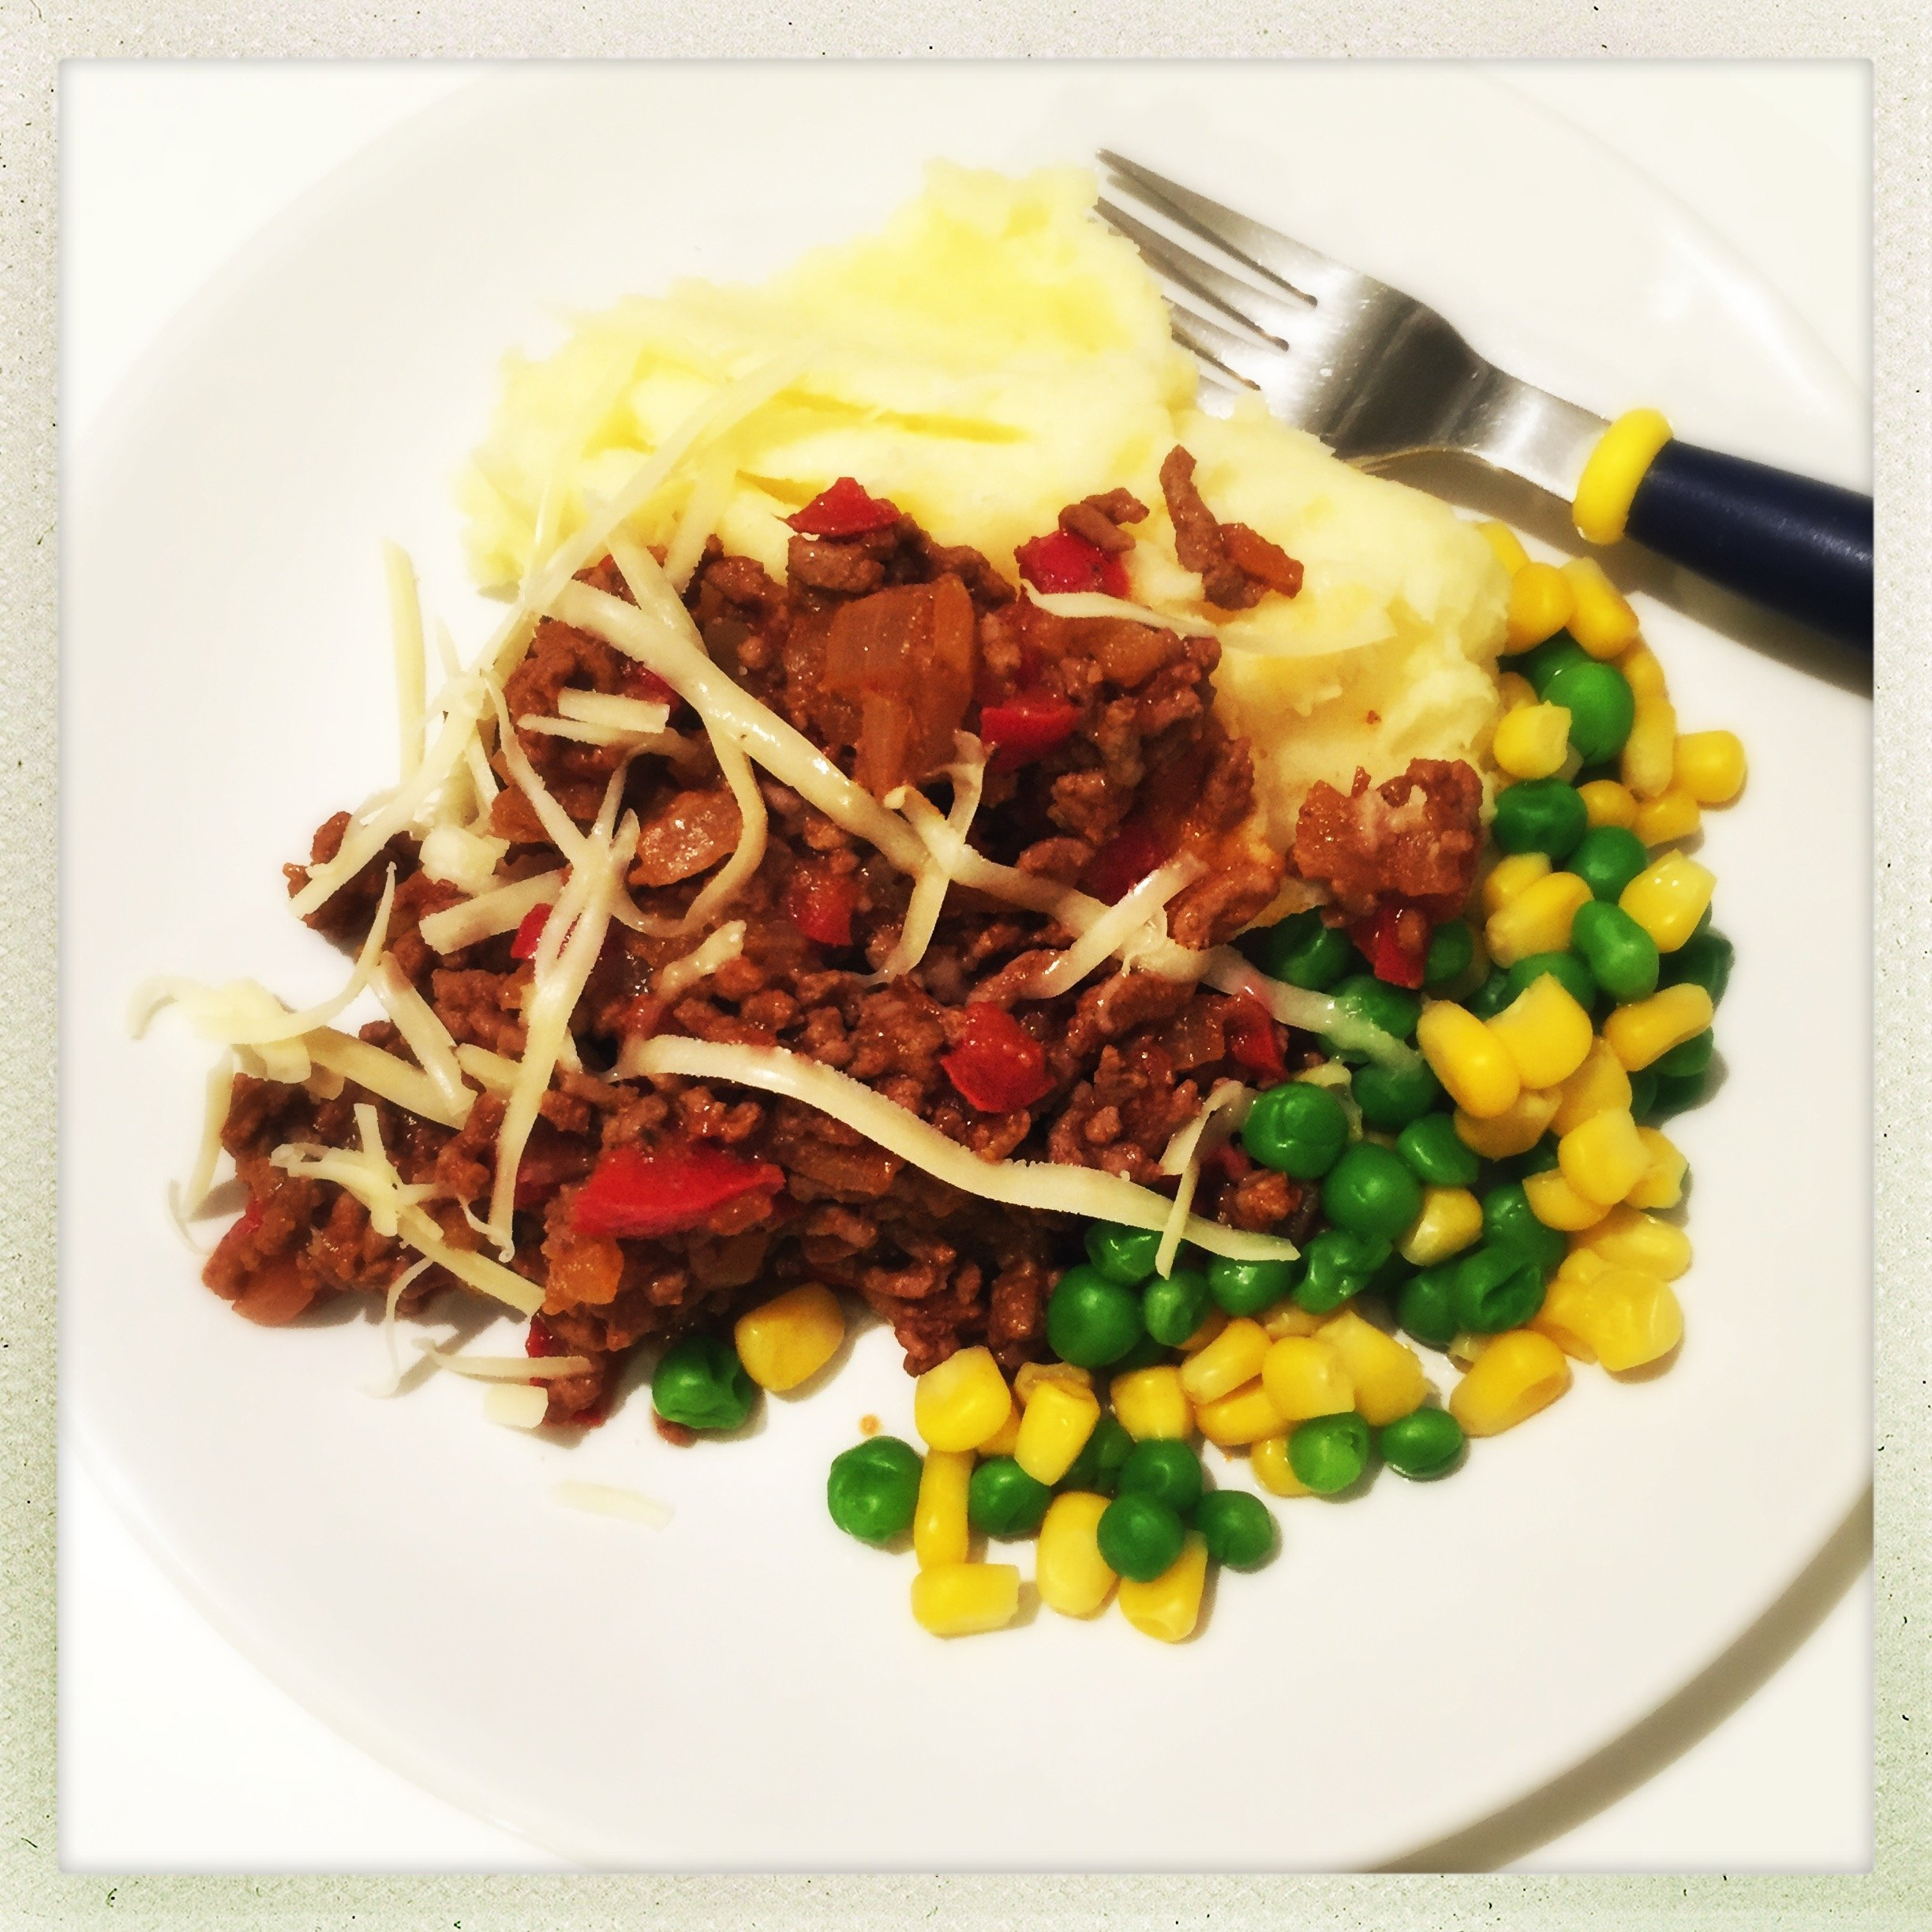 white plate with pile of homemade savoury mince served over cheesy mashed potatoes with a side of peas and corn